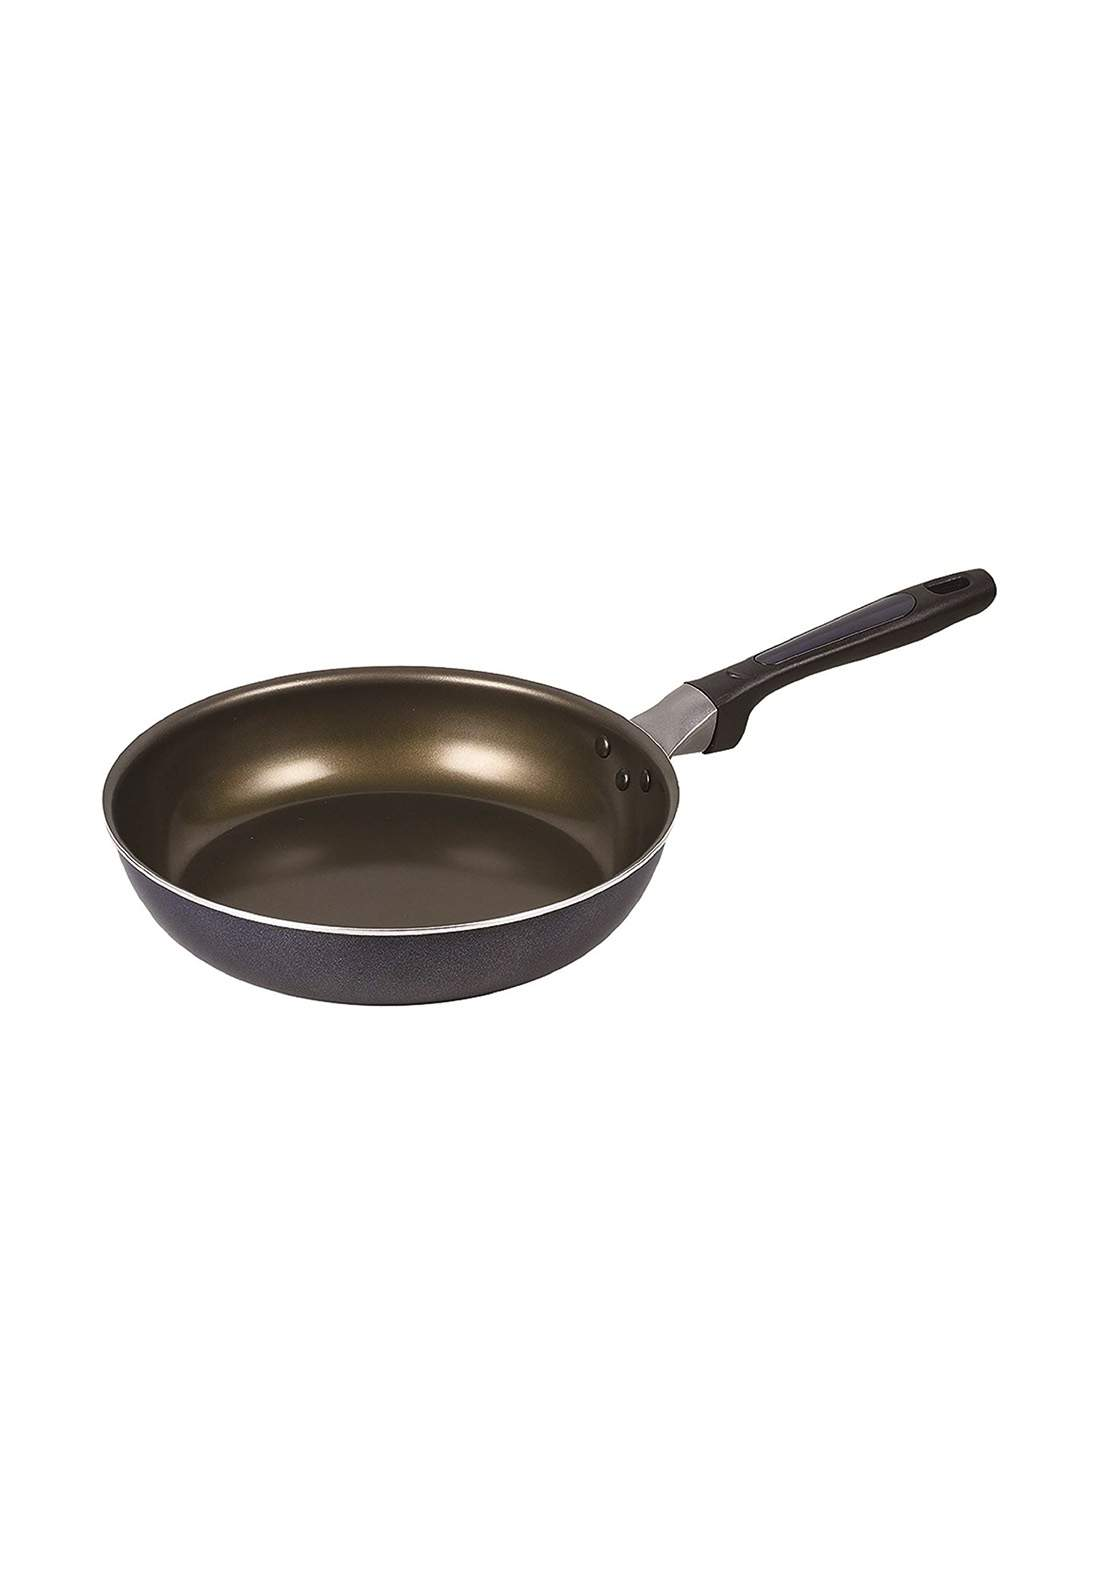 Pearl Metal HB-5149 Frying Pan   26 cm  Induction Compatible, Spinning Coat Cook Advance Next مقلاة